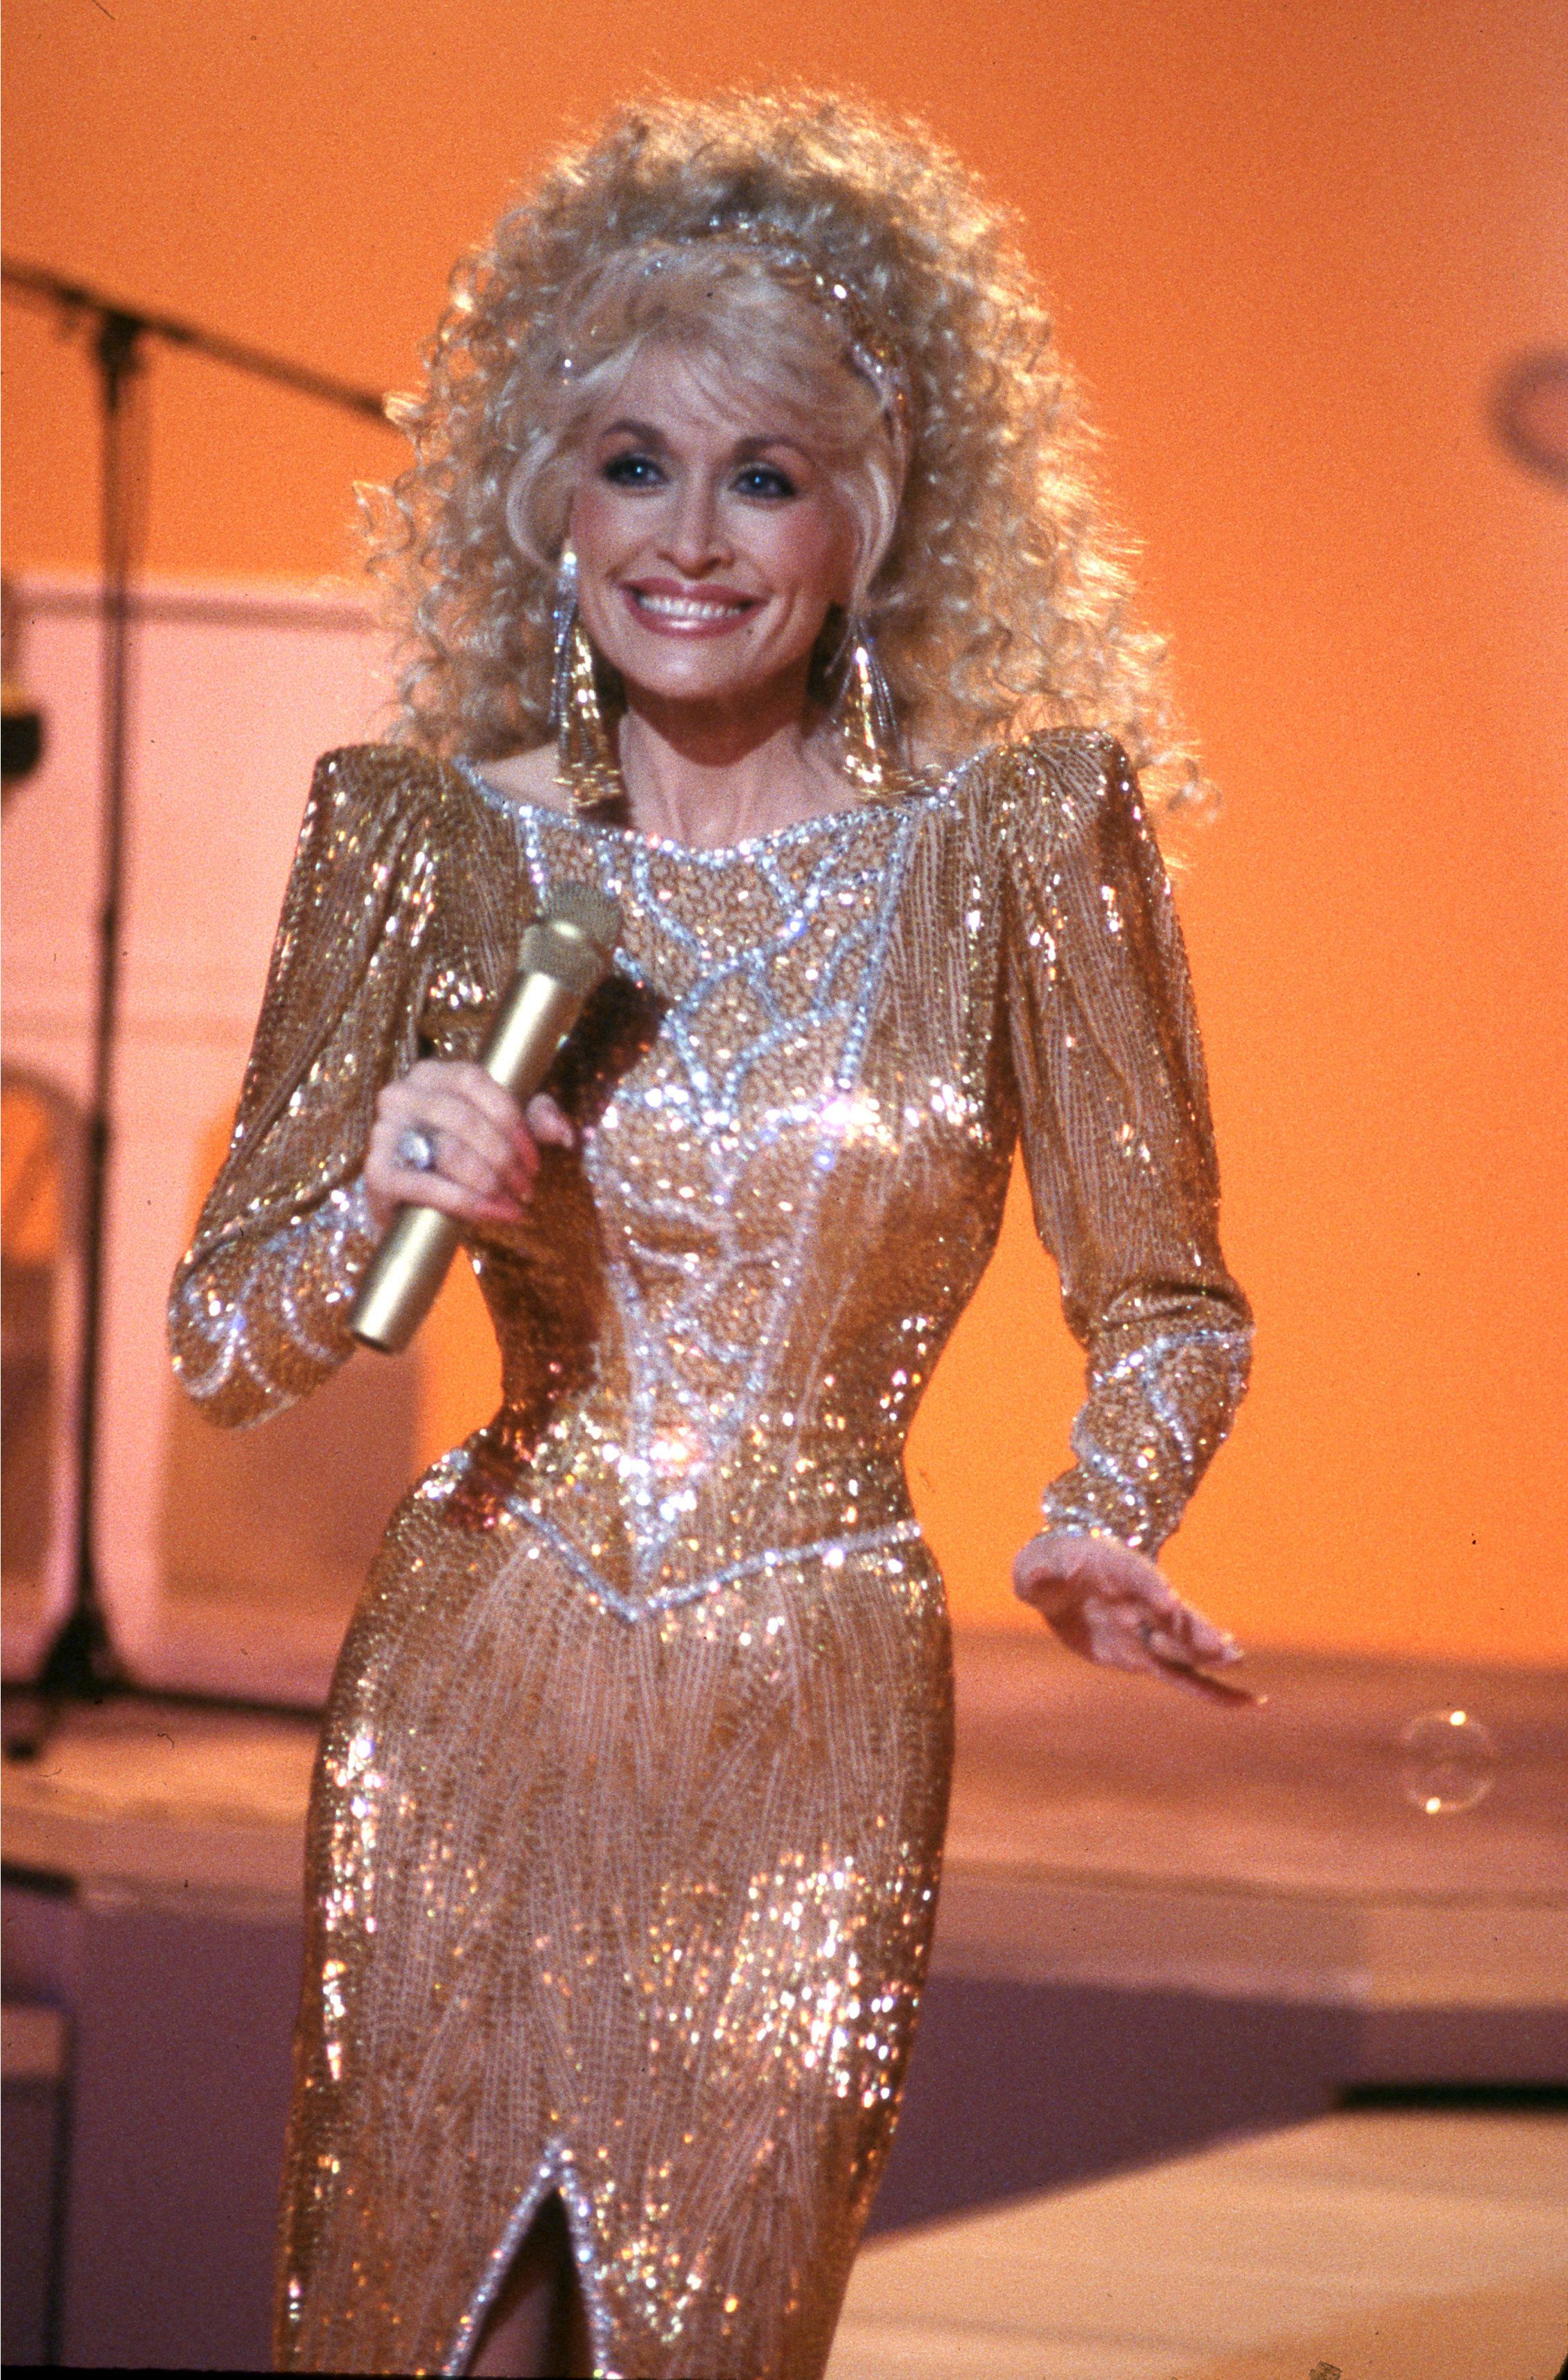 Dolly Parton on 'Dolly' in 1987. (Photo by Jerry Fitzgerald/ABC via Getty Images)